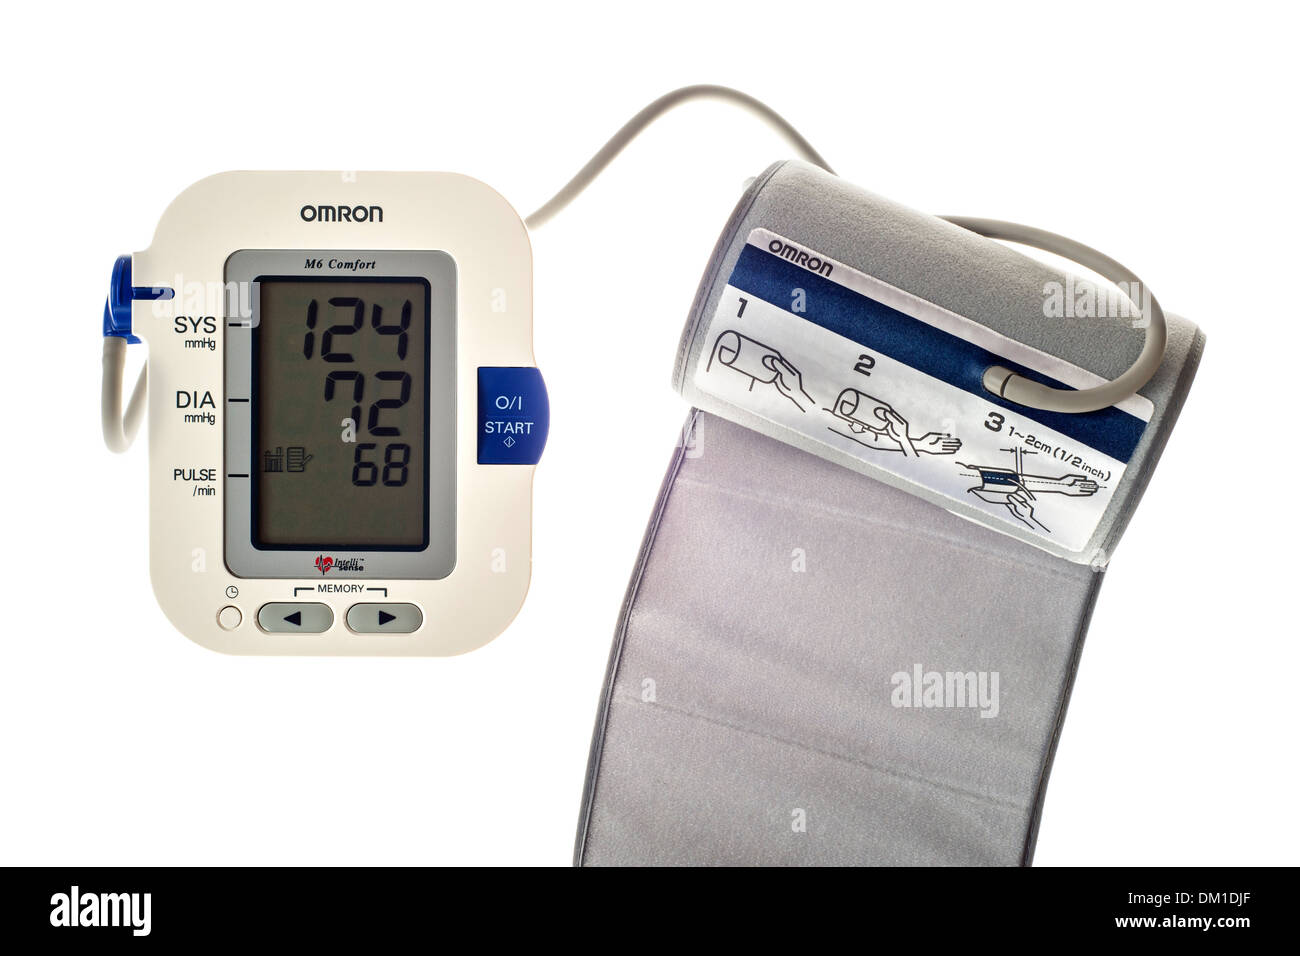 Close up of digital blood pressure monitor on white background - Stock Image